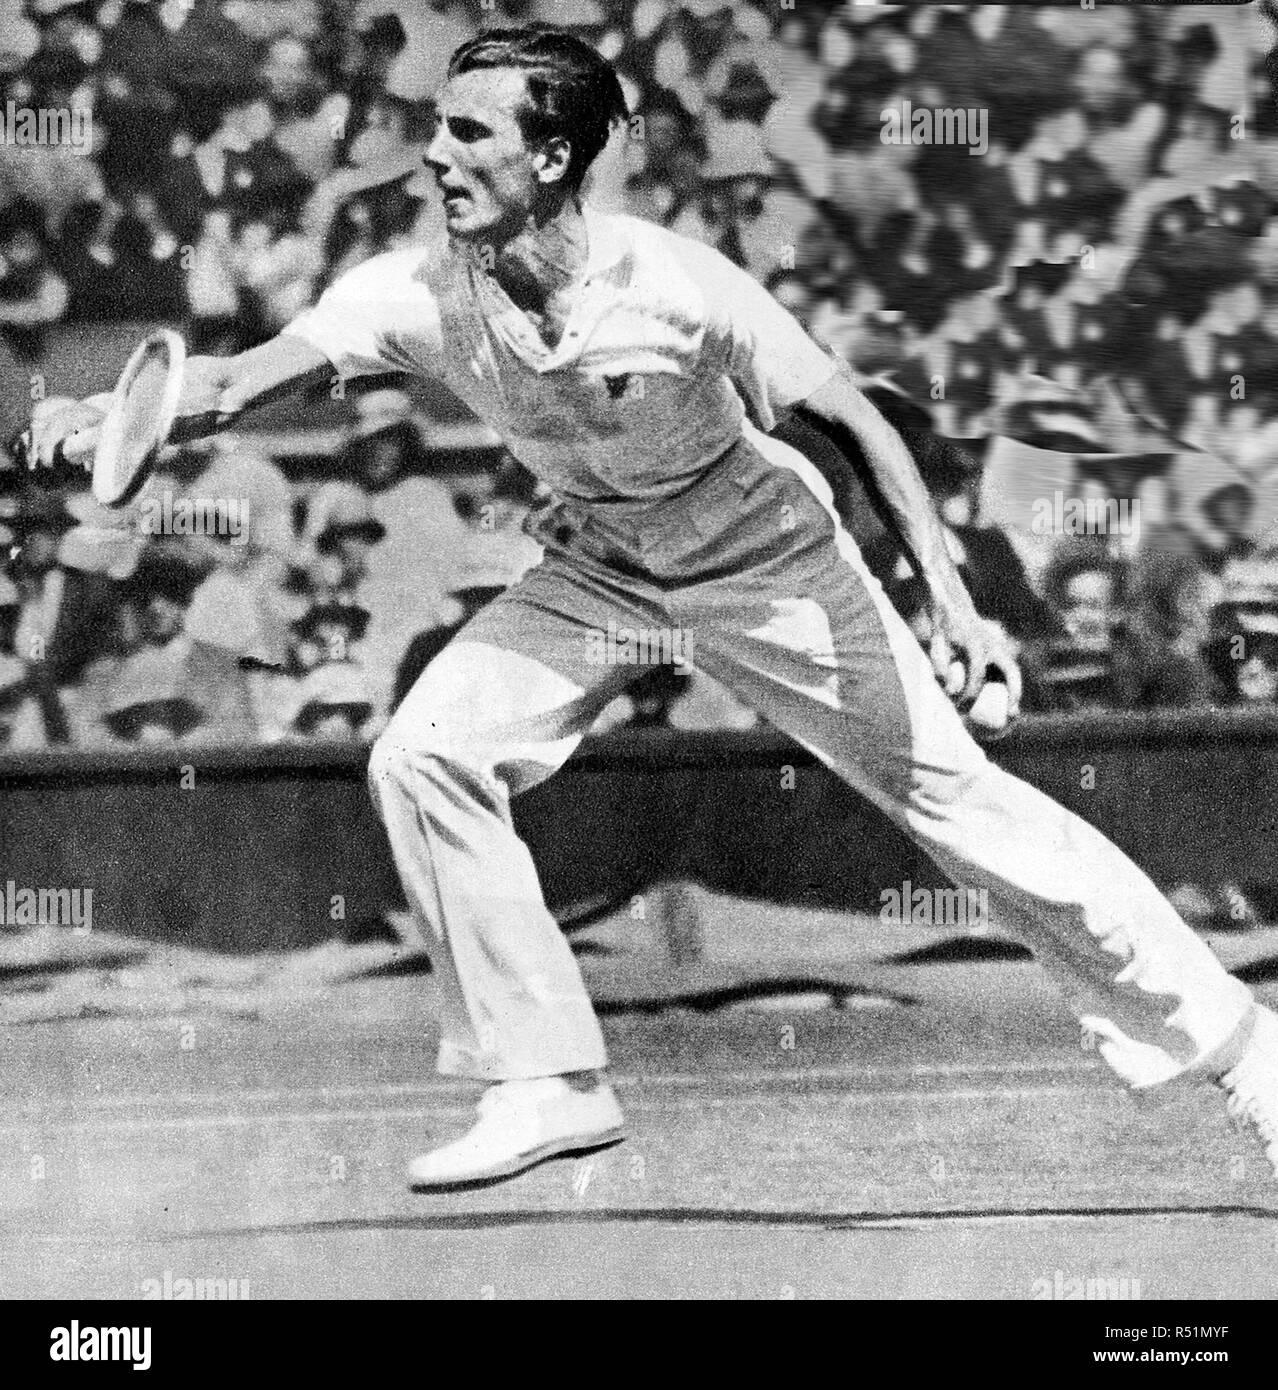 1934, Britain's men's Wimbledon tennis champion Fred Perry who beat Australian, J Crawford - Stock Image